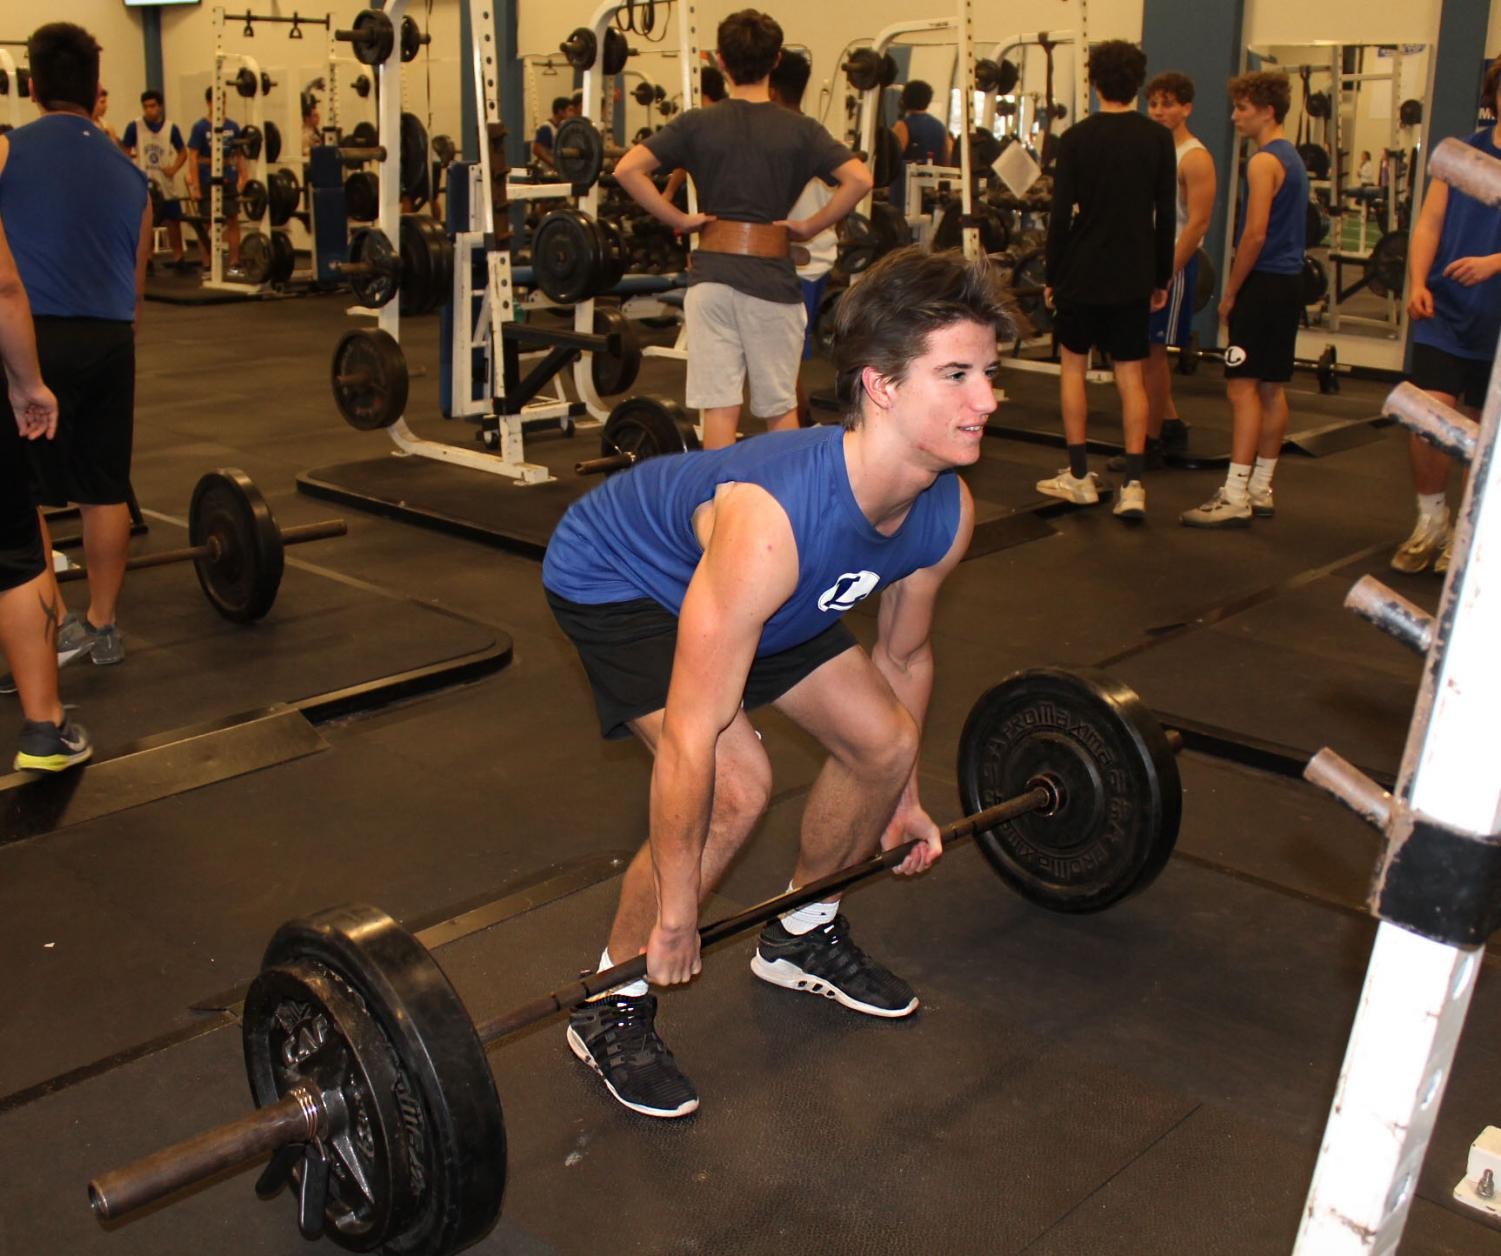 Junior Clayton Bever deadlifts during powerlifting practice. The first powerlifting meet is Thursday, Jan. 17 at Lampasas.